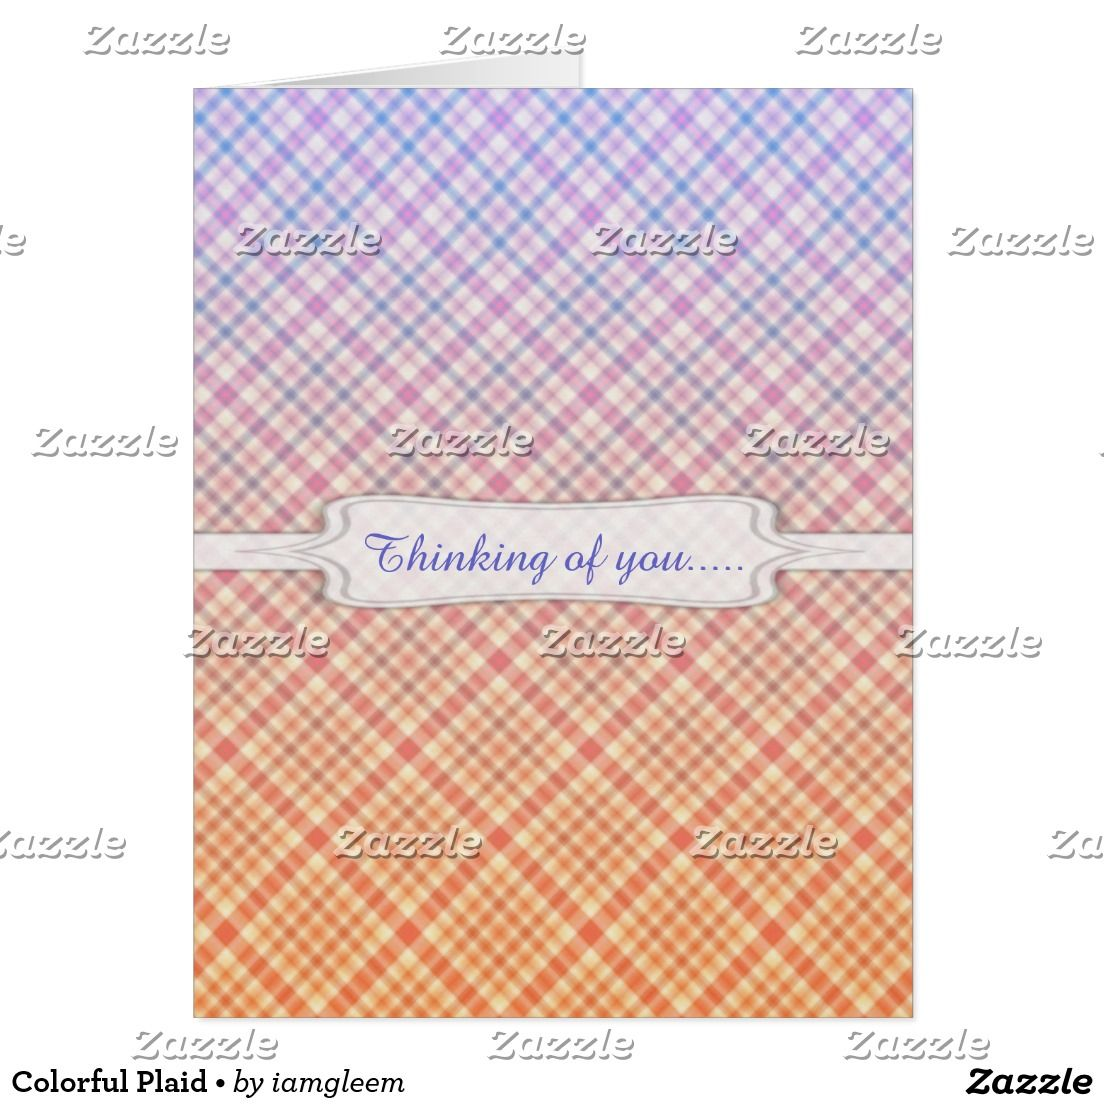 Colorful Plaid • Card • This pattern is an original design created by Gina Lee Manley ©gleem. The pattern is in a colorful, gradient plaid design. Personalize with the text that best suits your needs using the font style, size, and color of your choice.